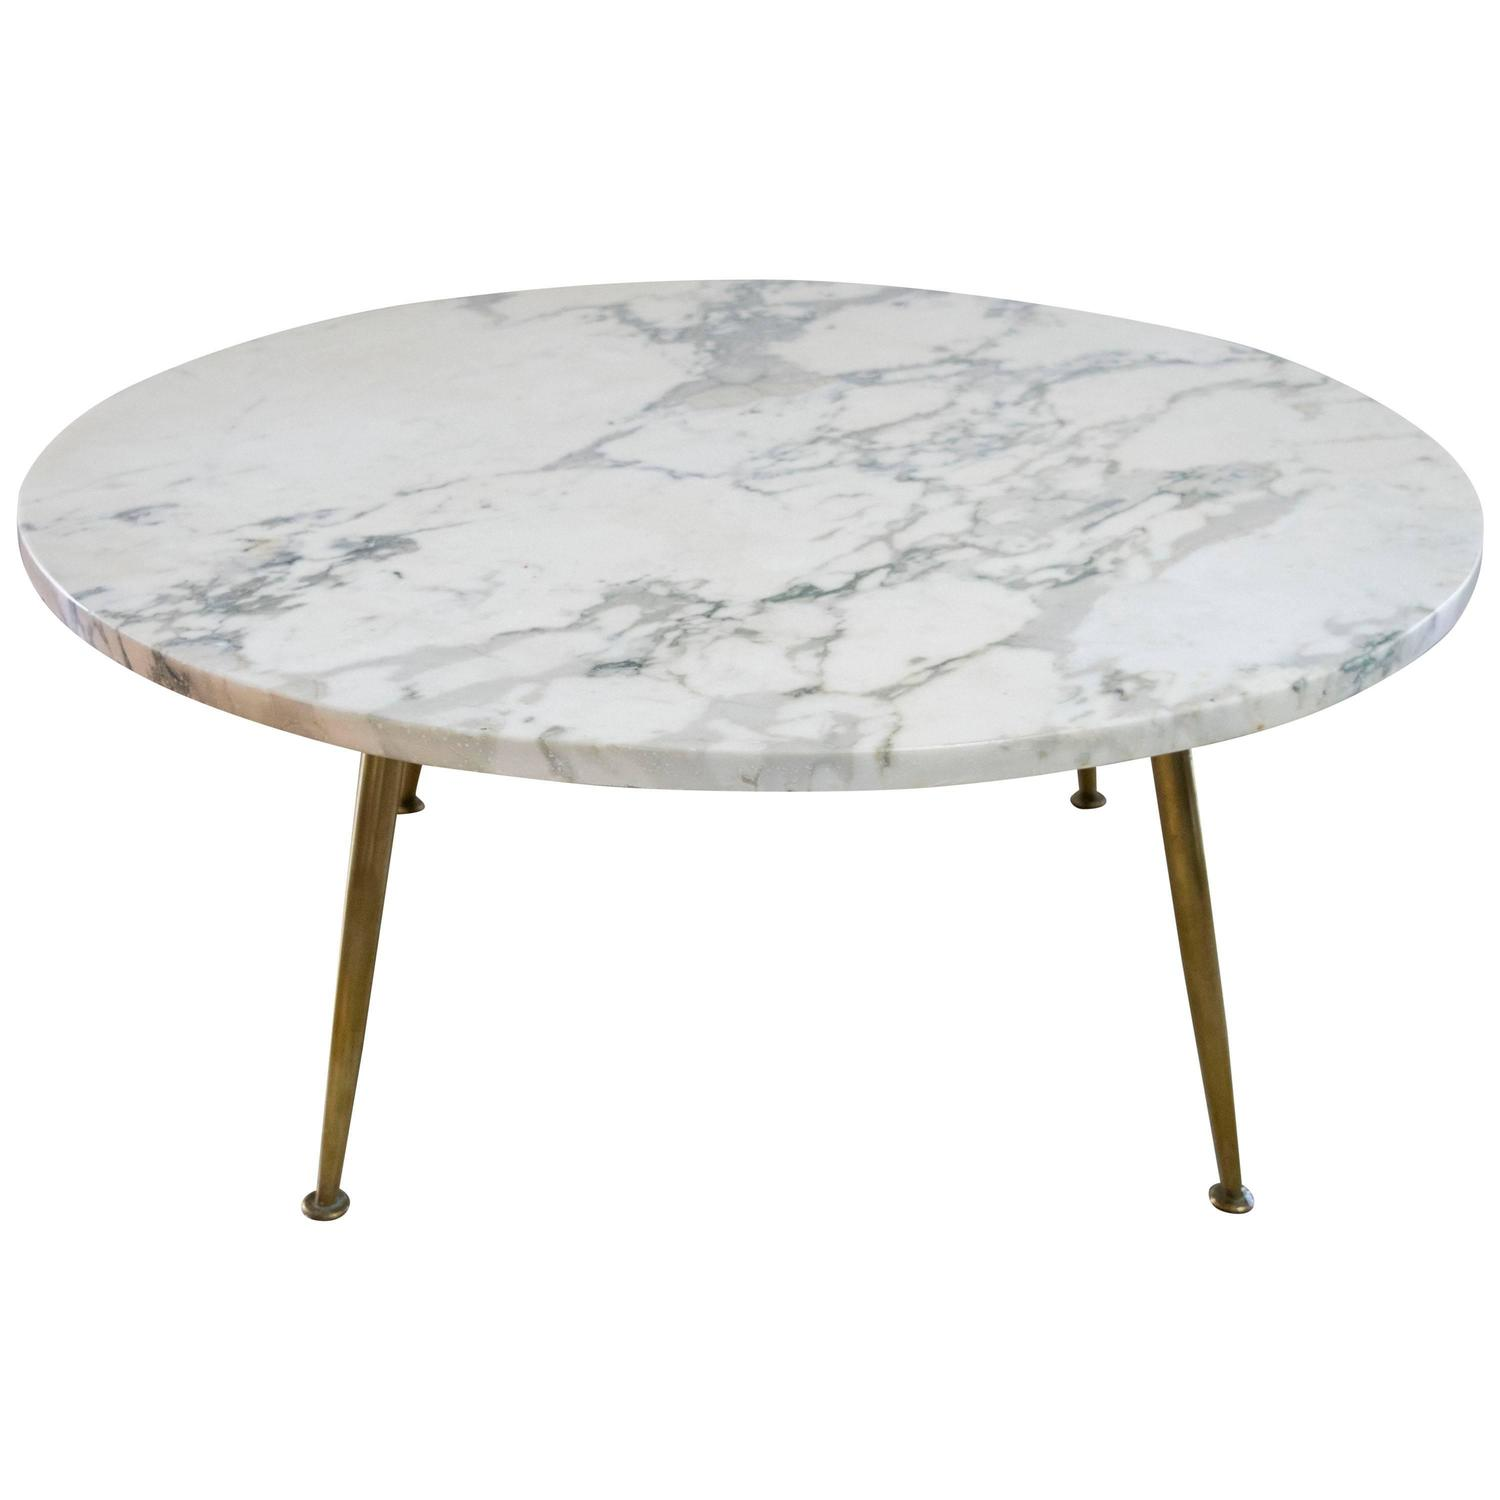 Italian Carrara Marble Coffee Table with Brass Legs at 1stdibs